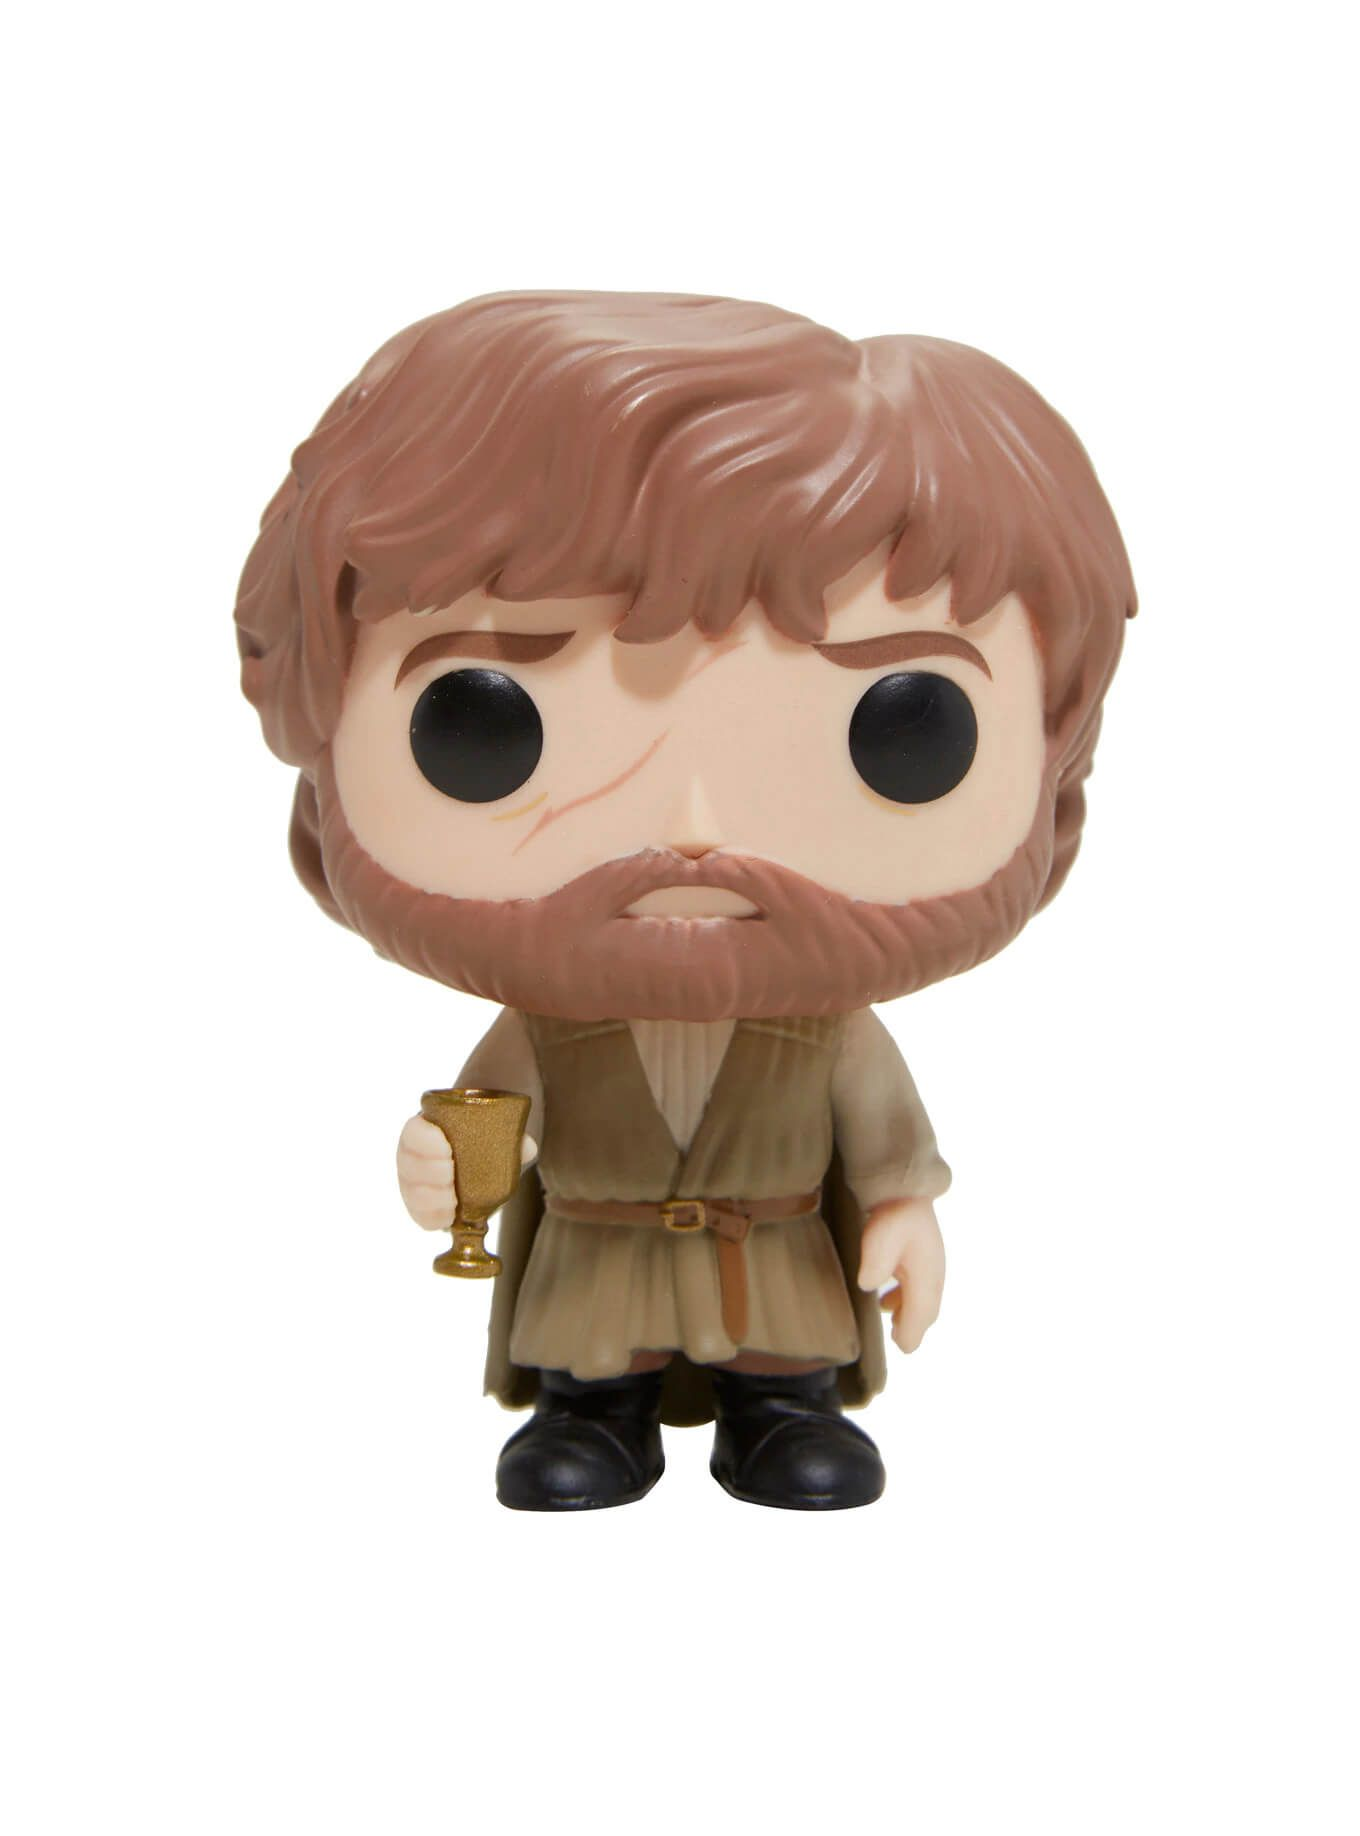 Tyrion Lannister #50 - Game of Thrones - Funko Pop!